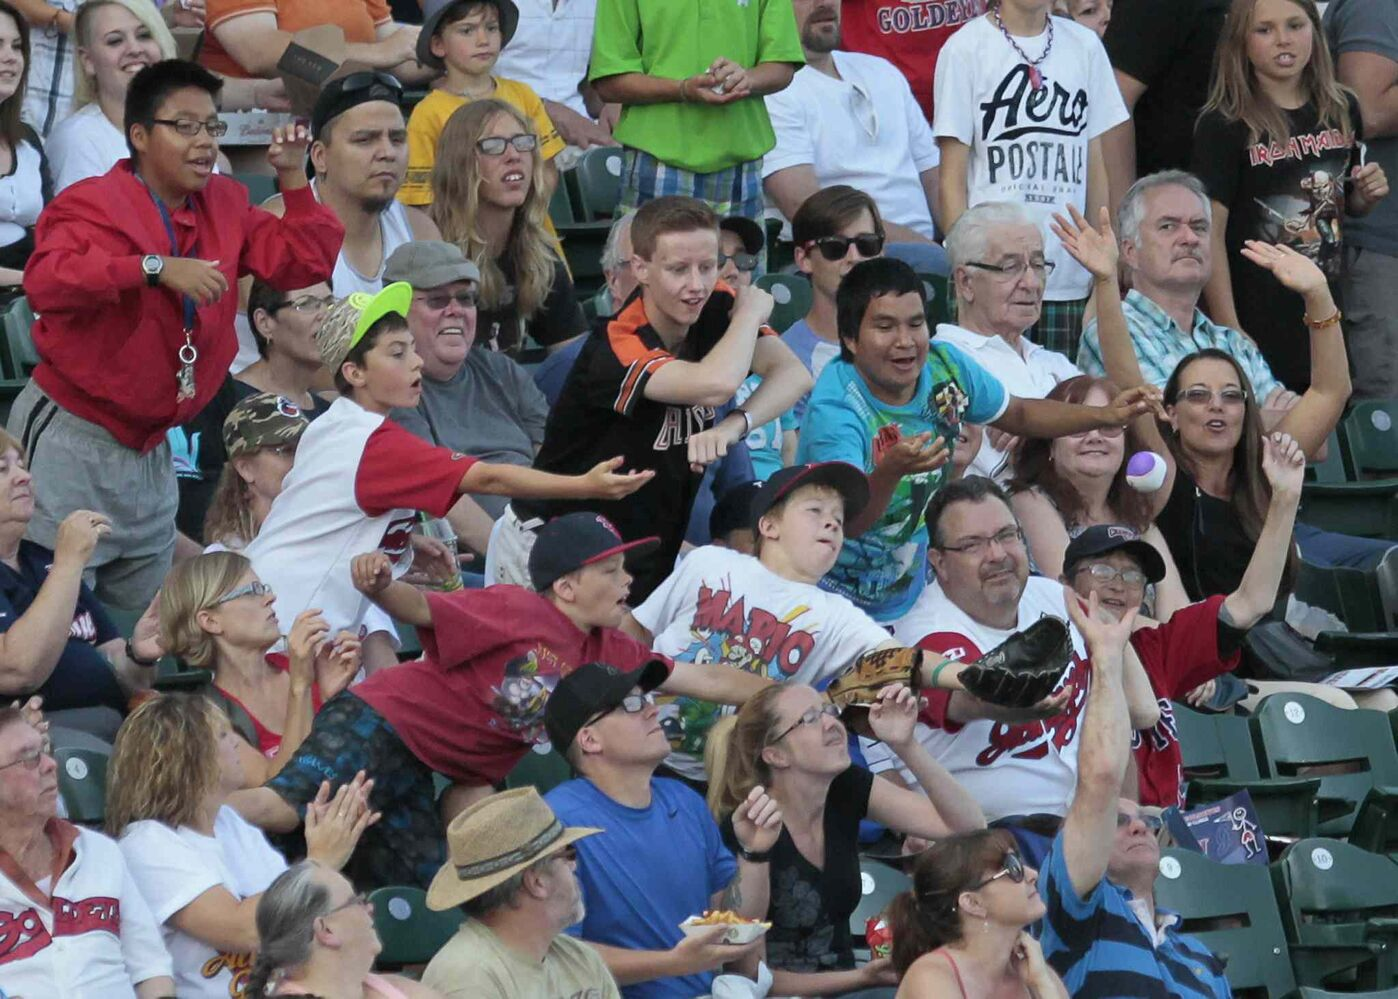 Fans lunge for a flying ball at the 2014 American Association All-Star game in Winnipeg Tuesday. (John Woods / Winnipeg Free Press)